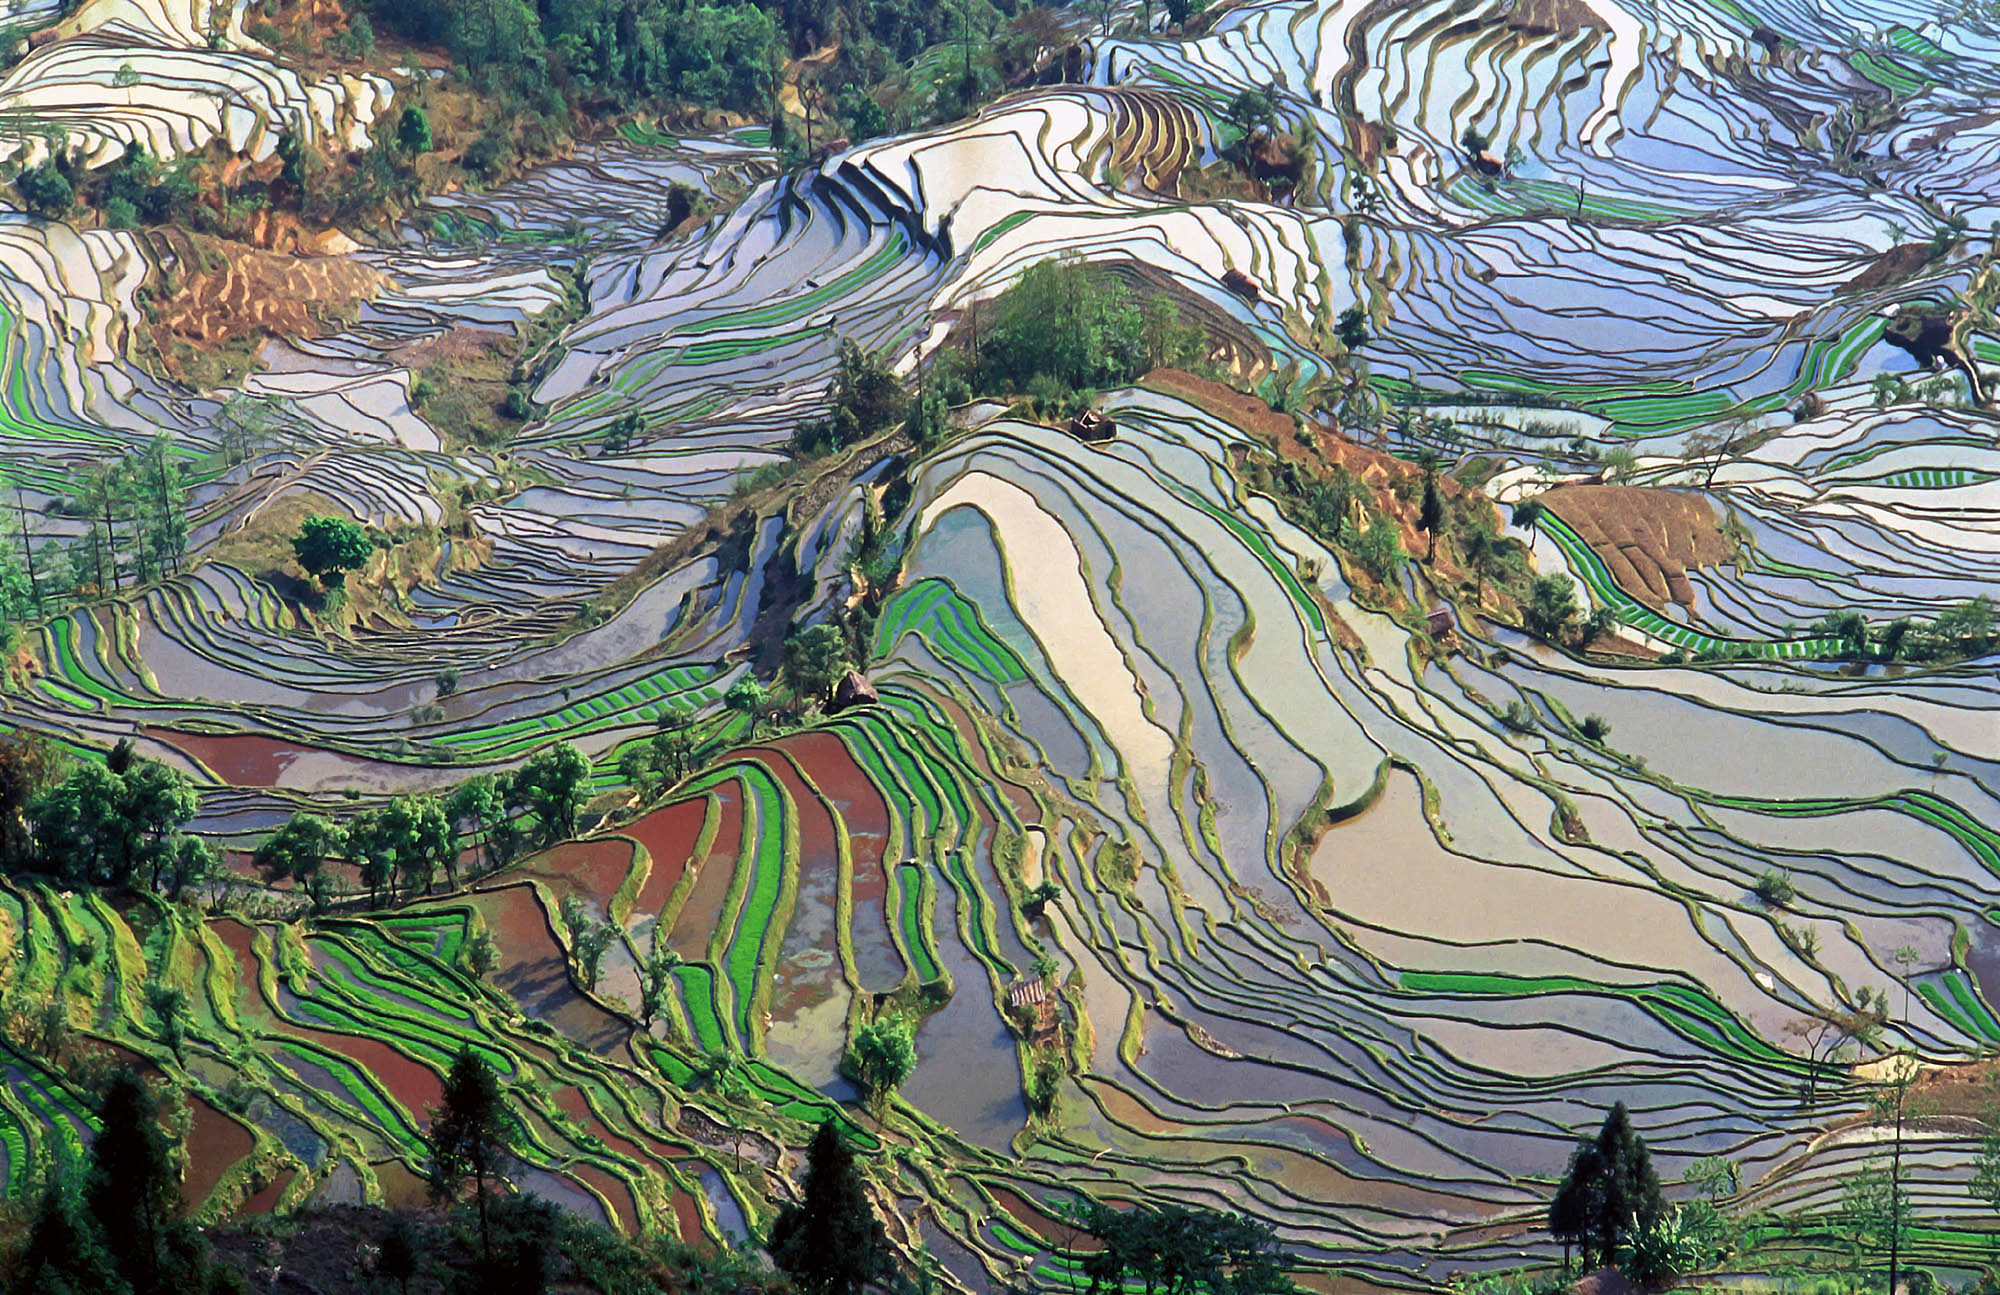 Terrace_field_yunnan_china_denoised